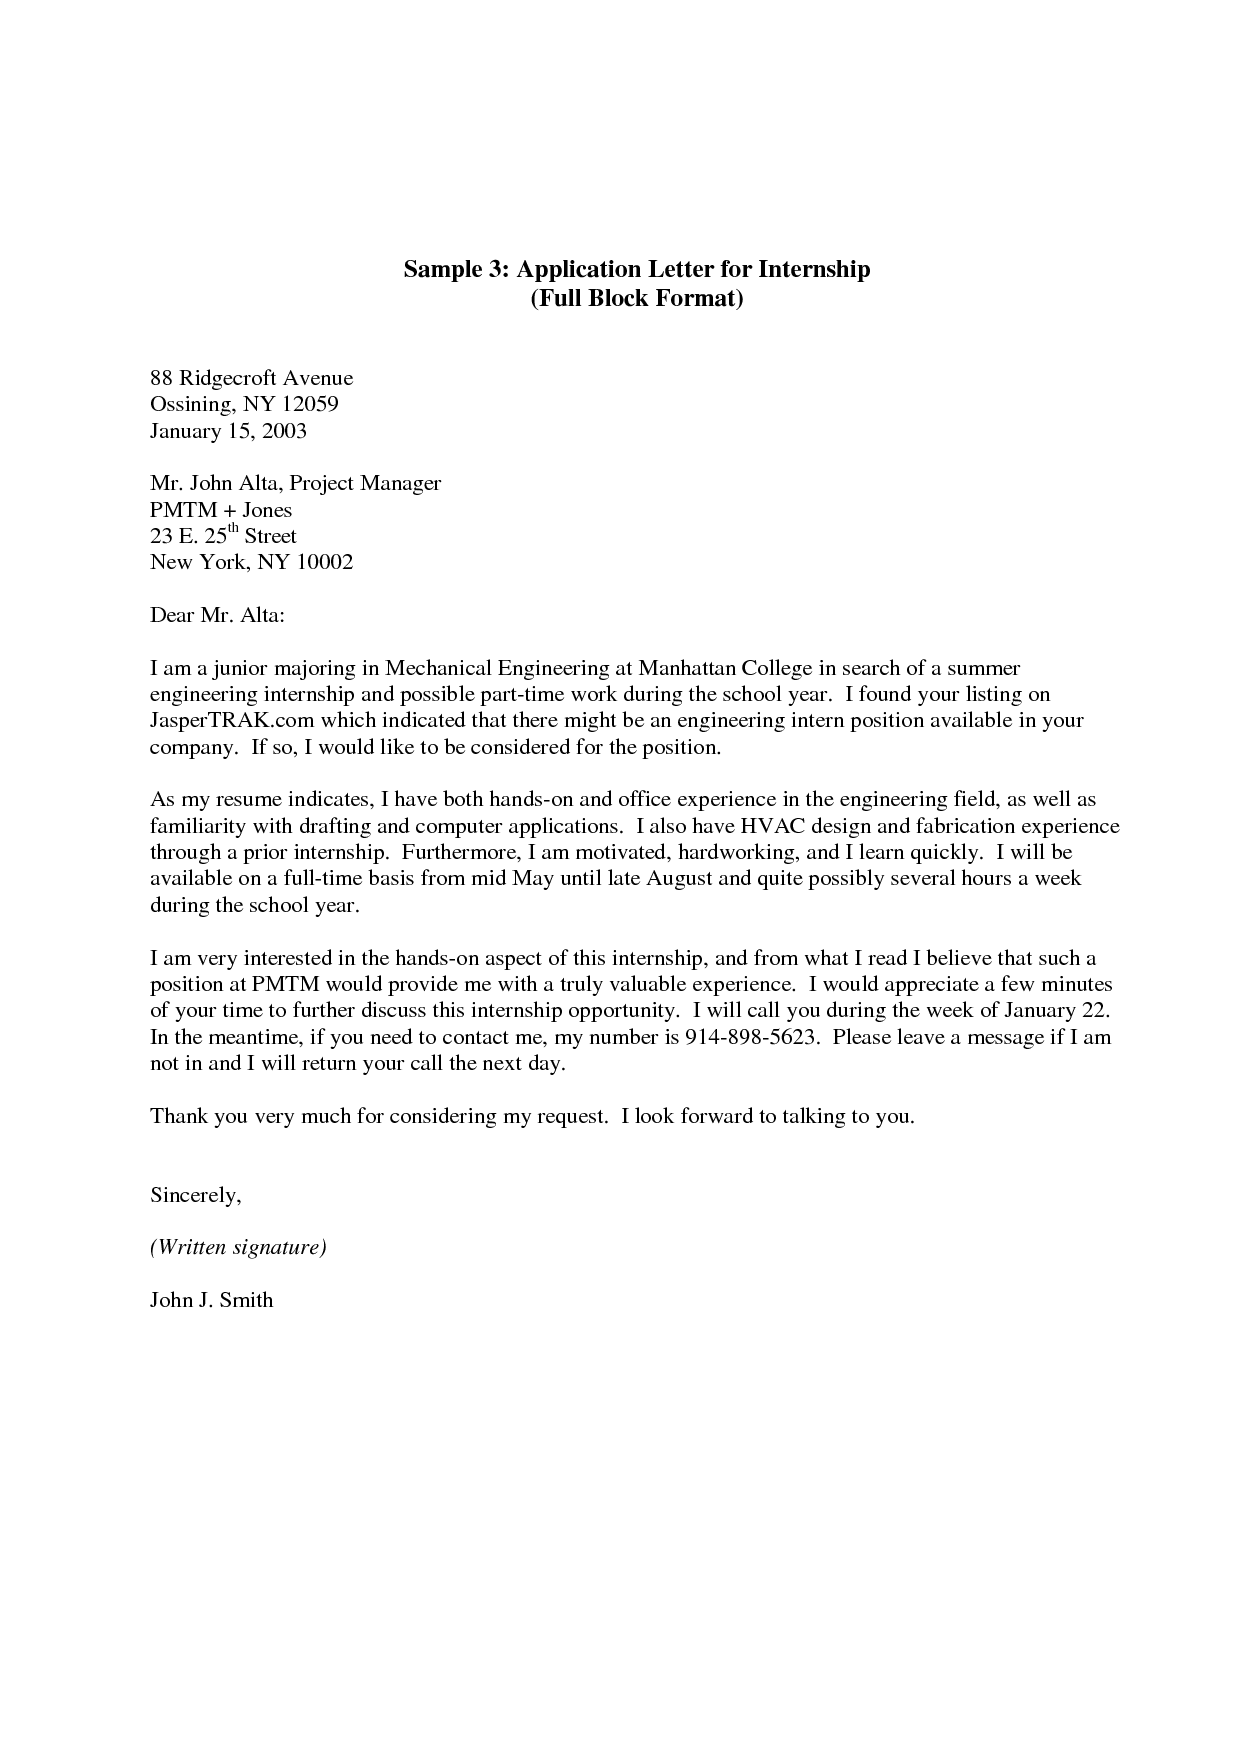 Sample Of Cover Letter Internship Application Letter Here Is A Sample Cover Letter For